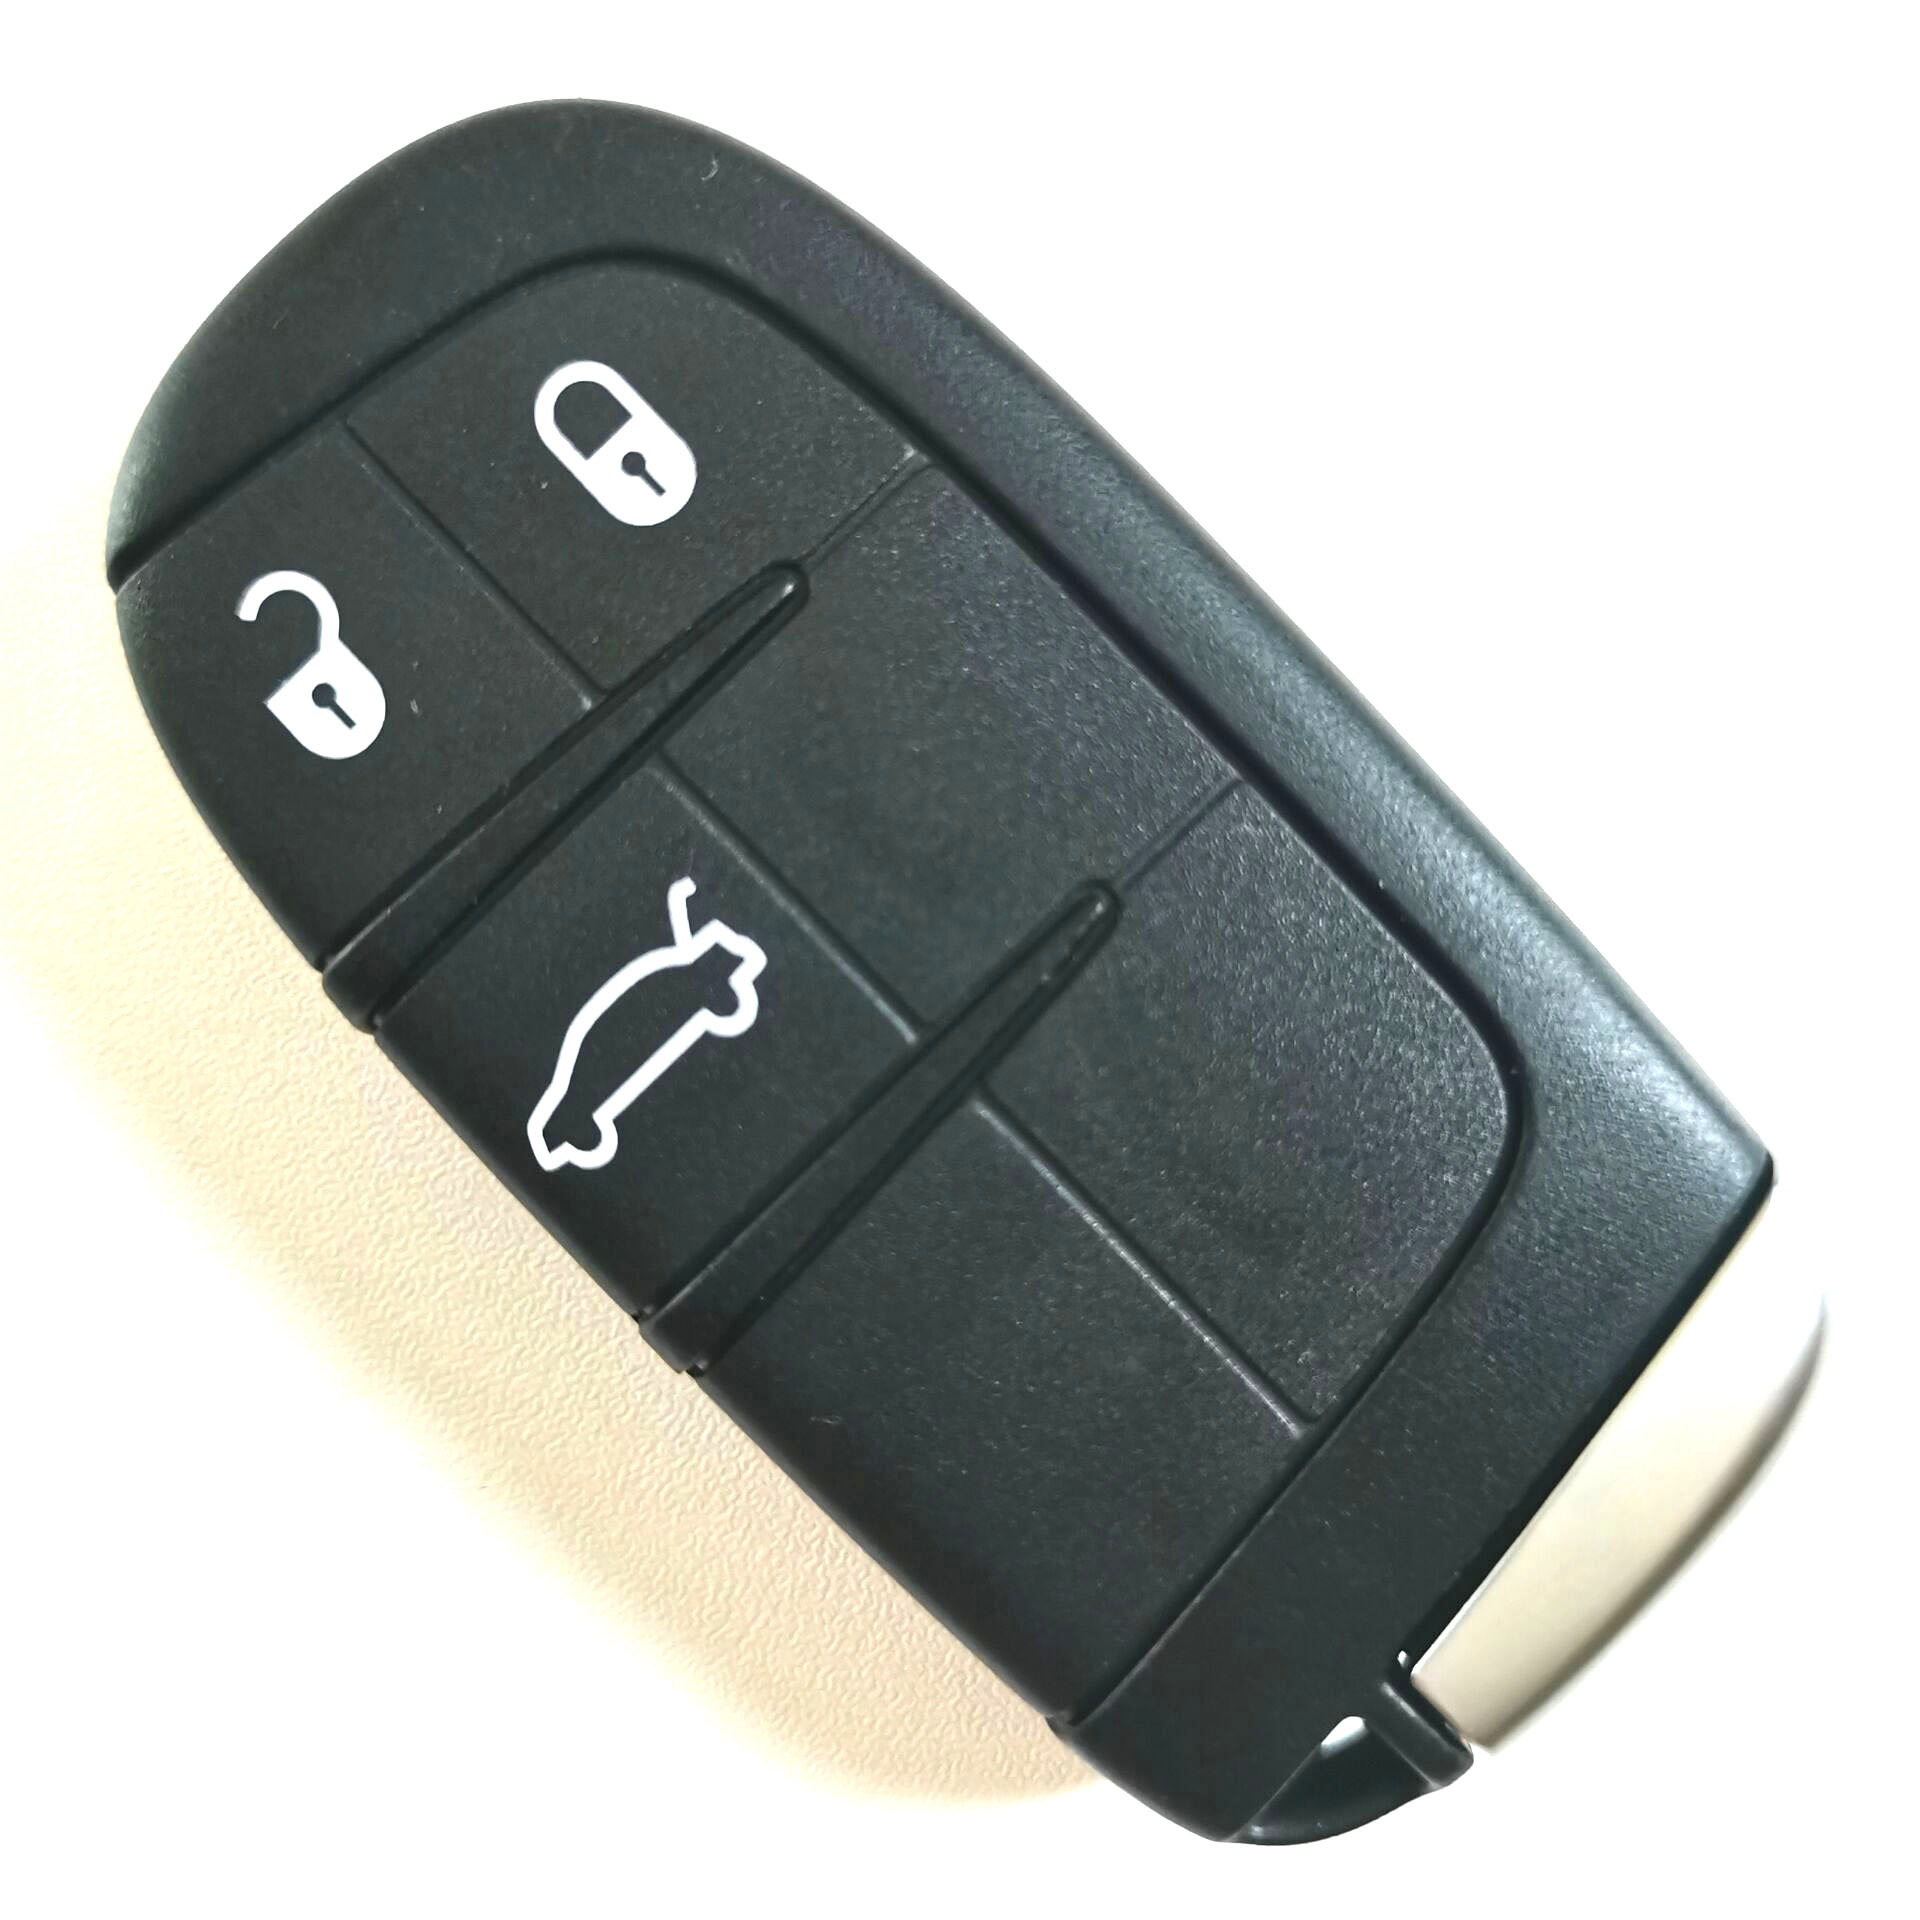 Original 3 Buttons 433 MHz Smart Proximity Key for Fiat